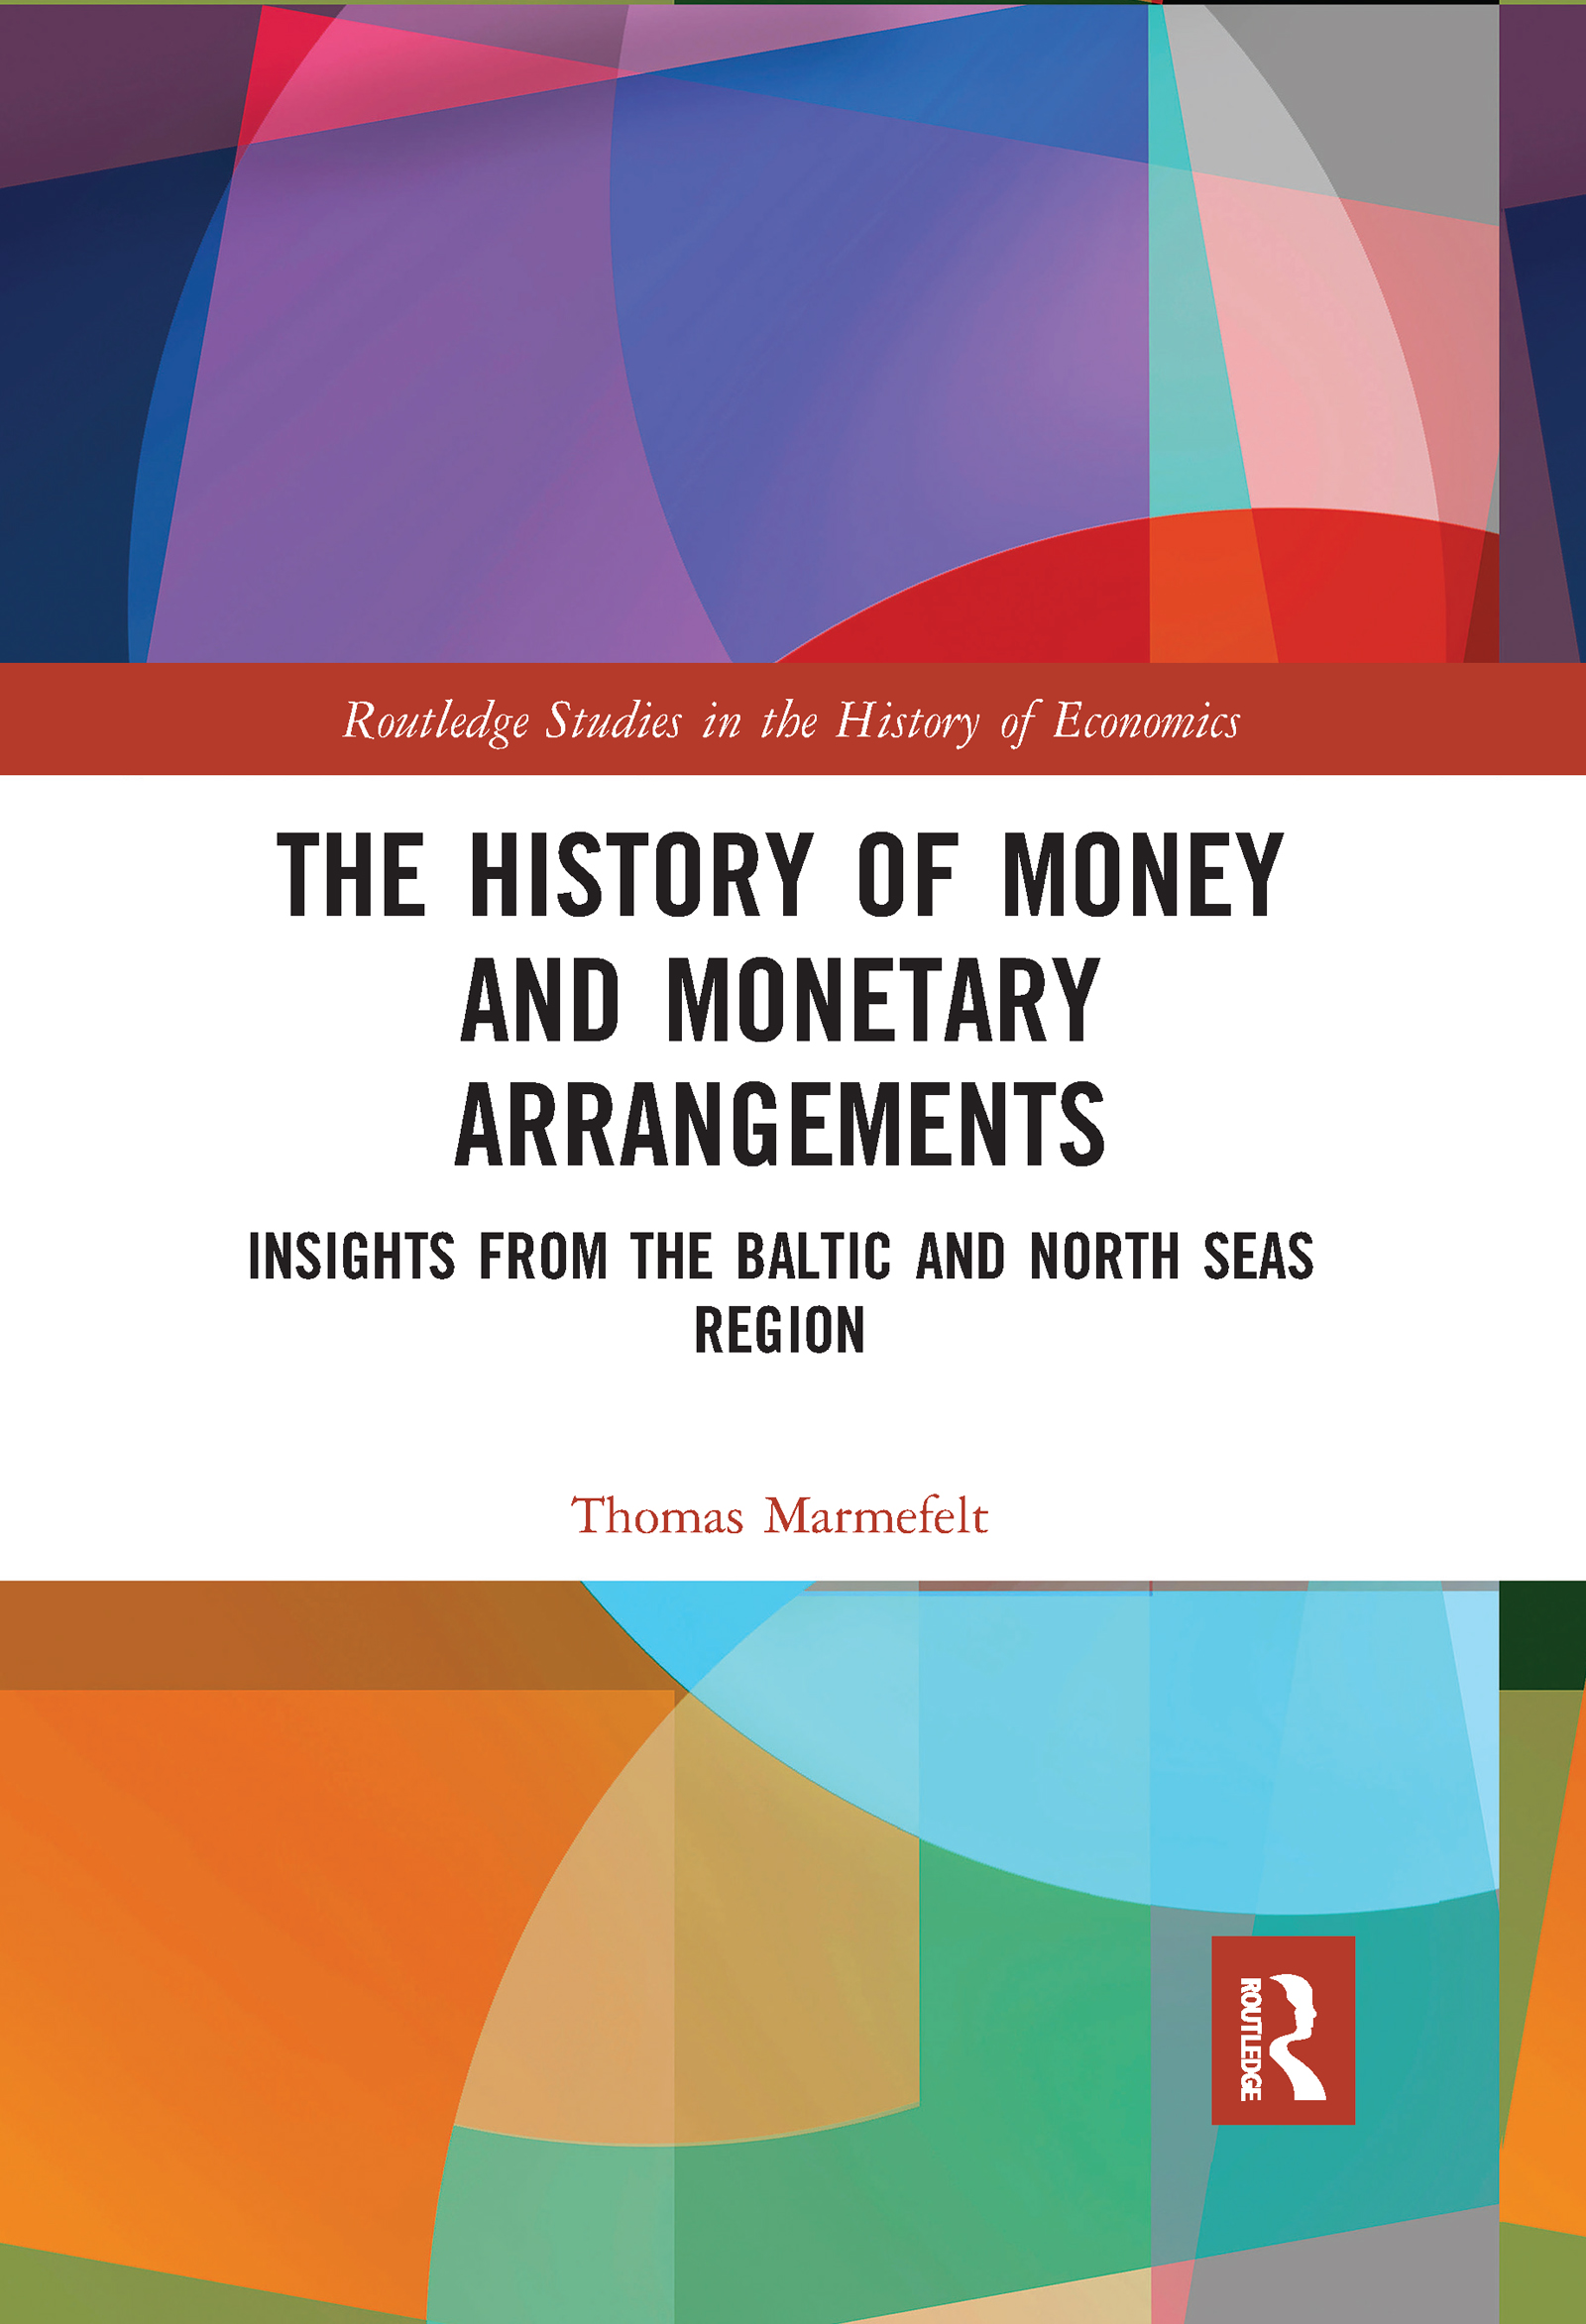 The History of Money and Monetary Arrangements